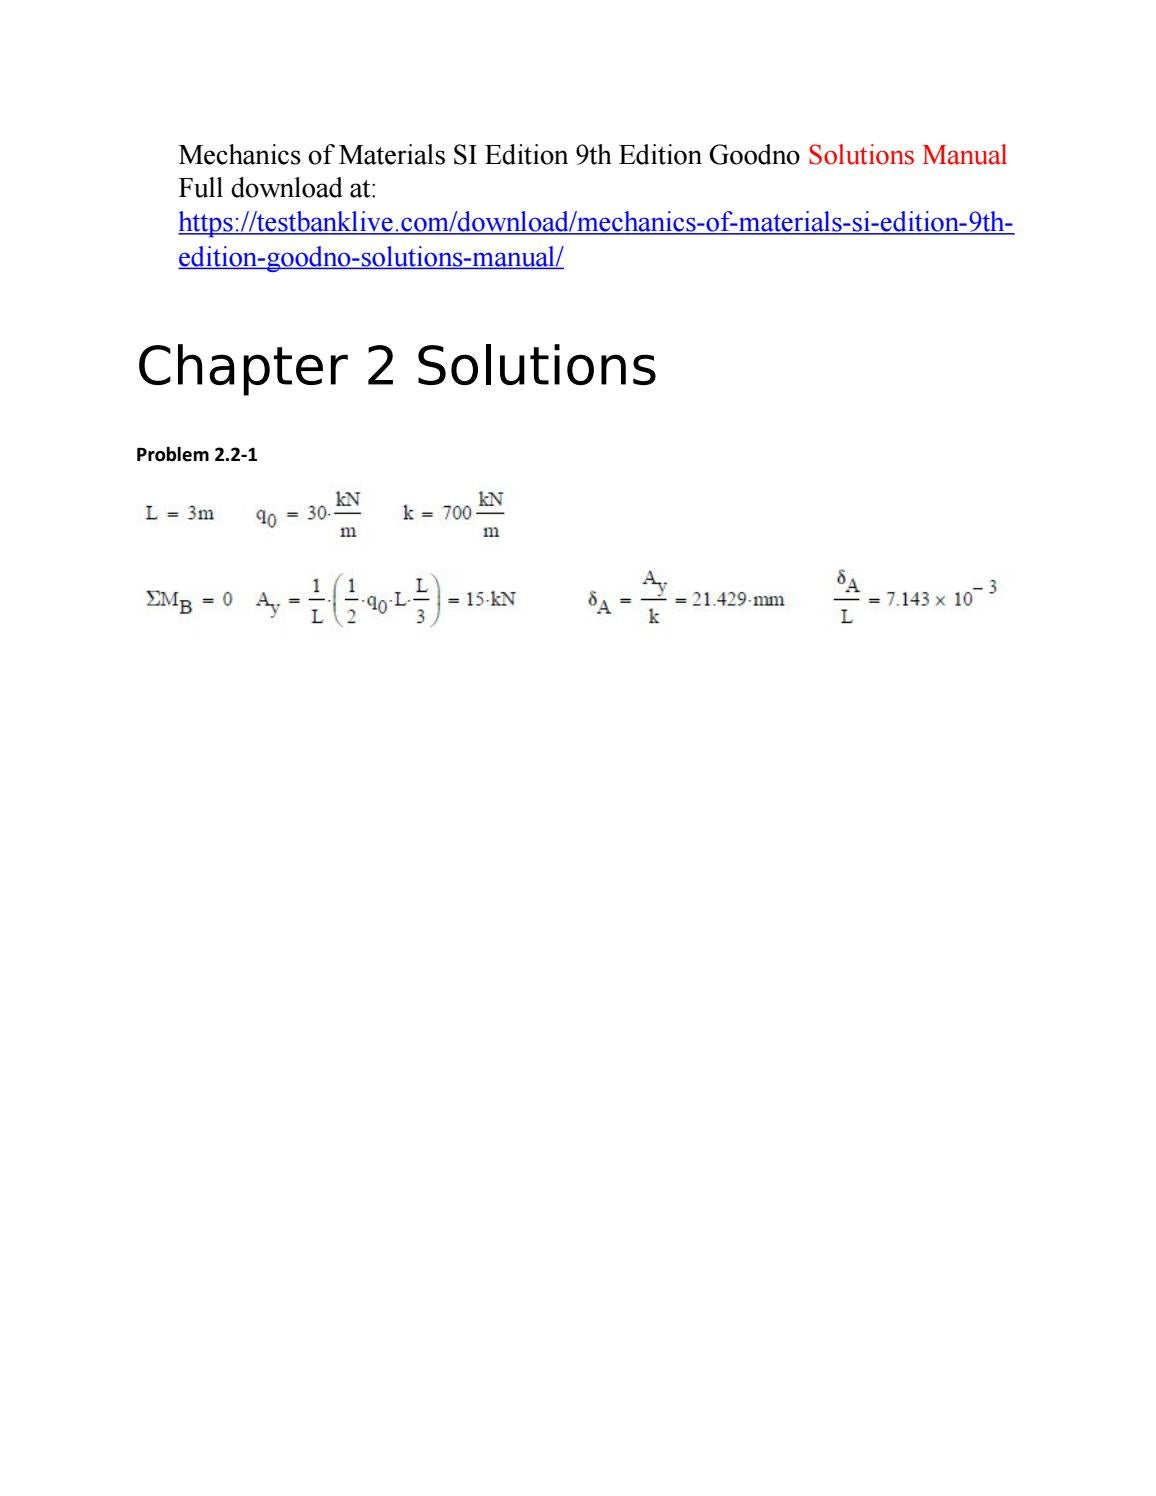 Mechanics of materials si edition 9th edition goodno solutions manual by  Lala7616 - issuu